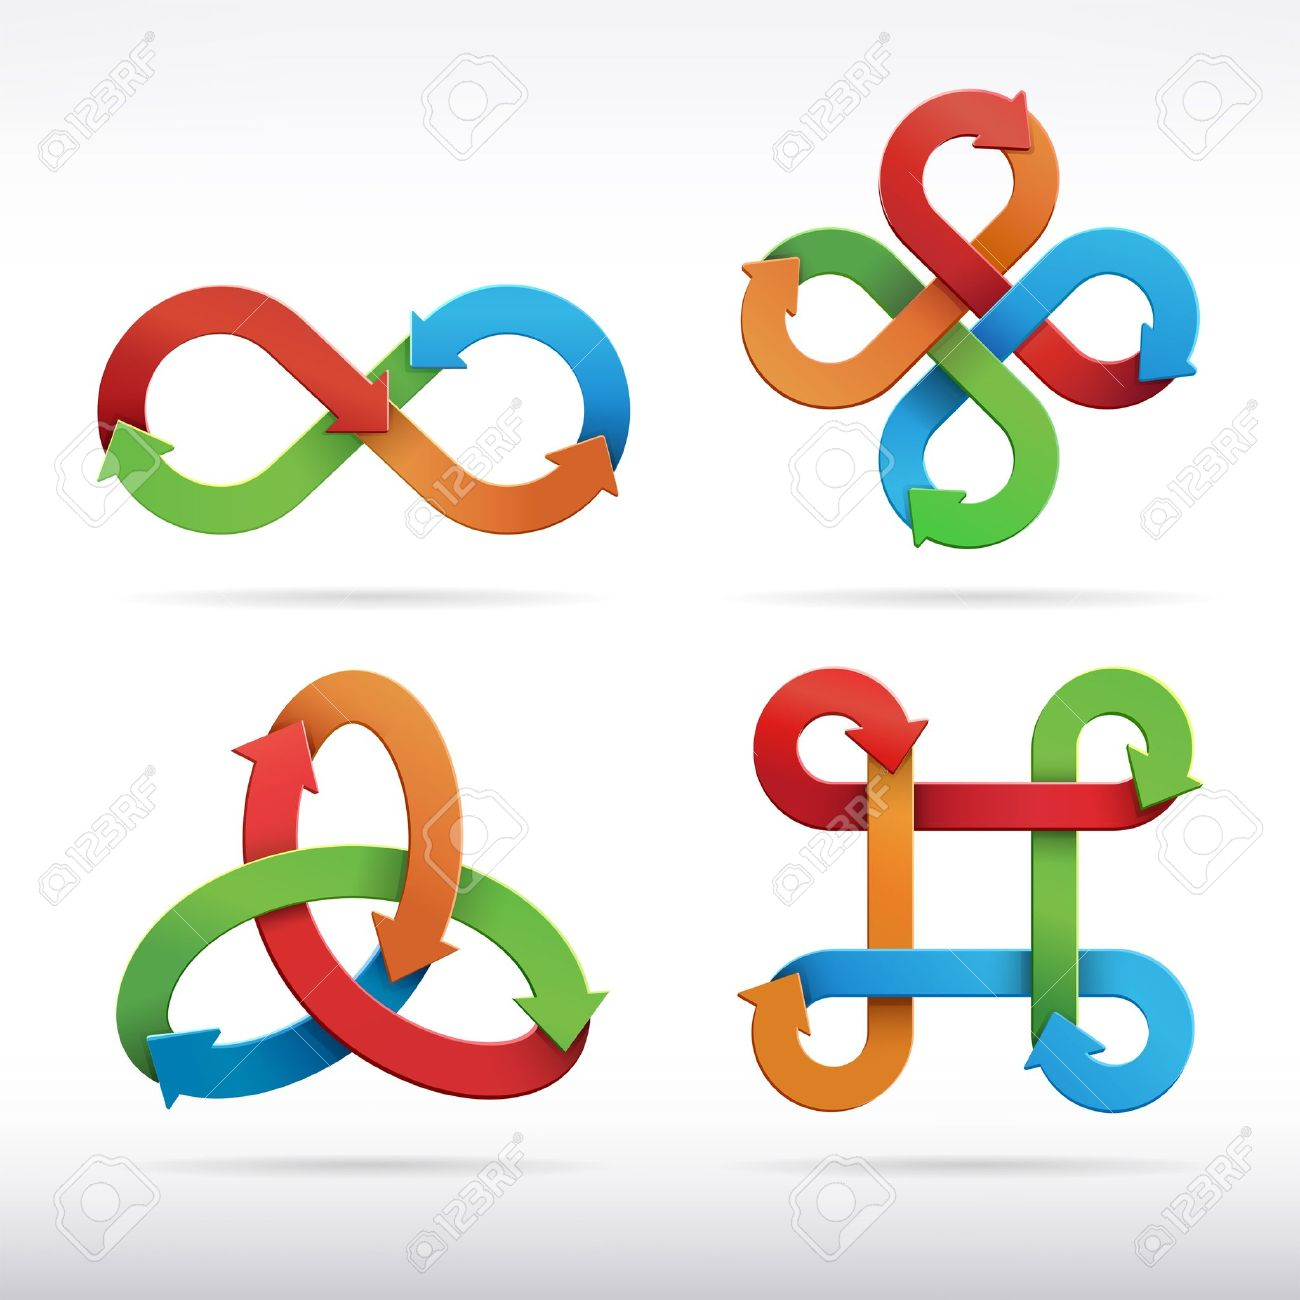 Colorful infinity symbol icons  Vector Illustration Stock Vector - 16673034